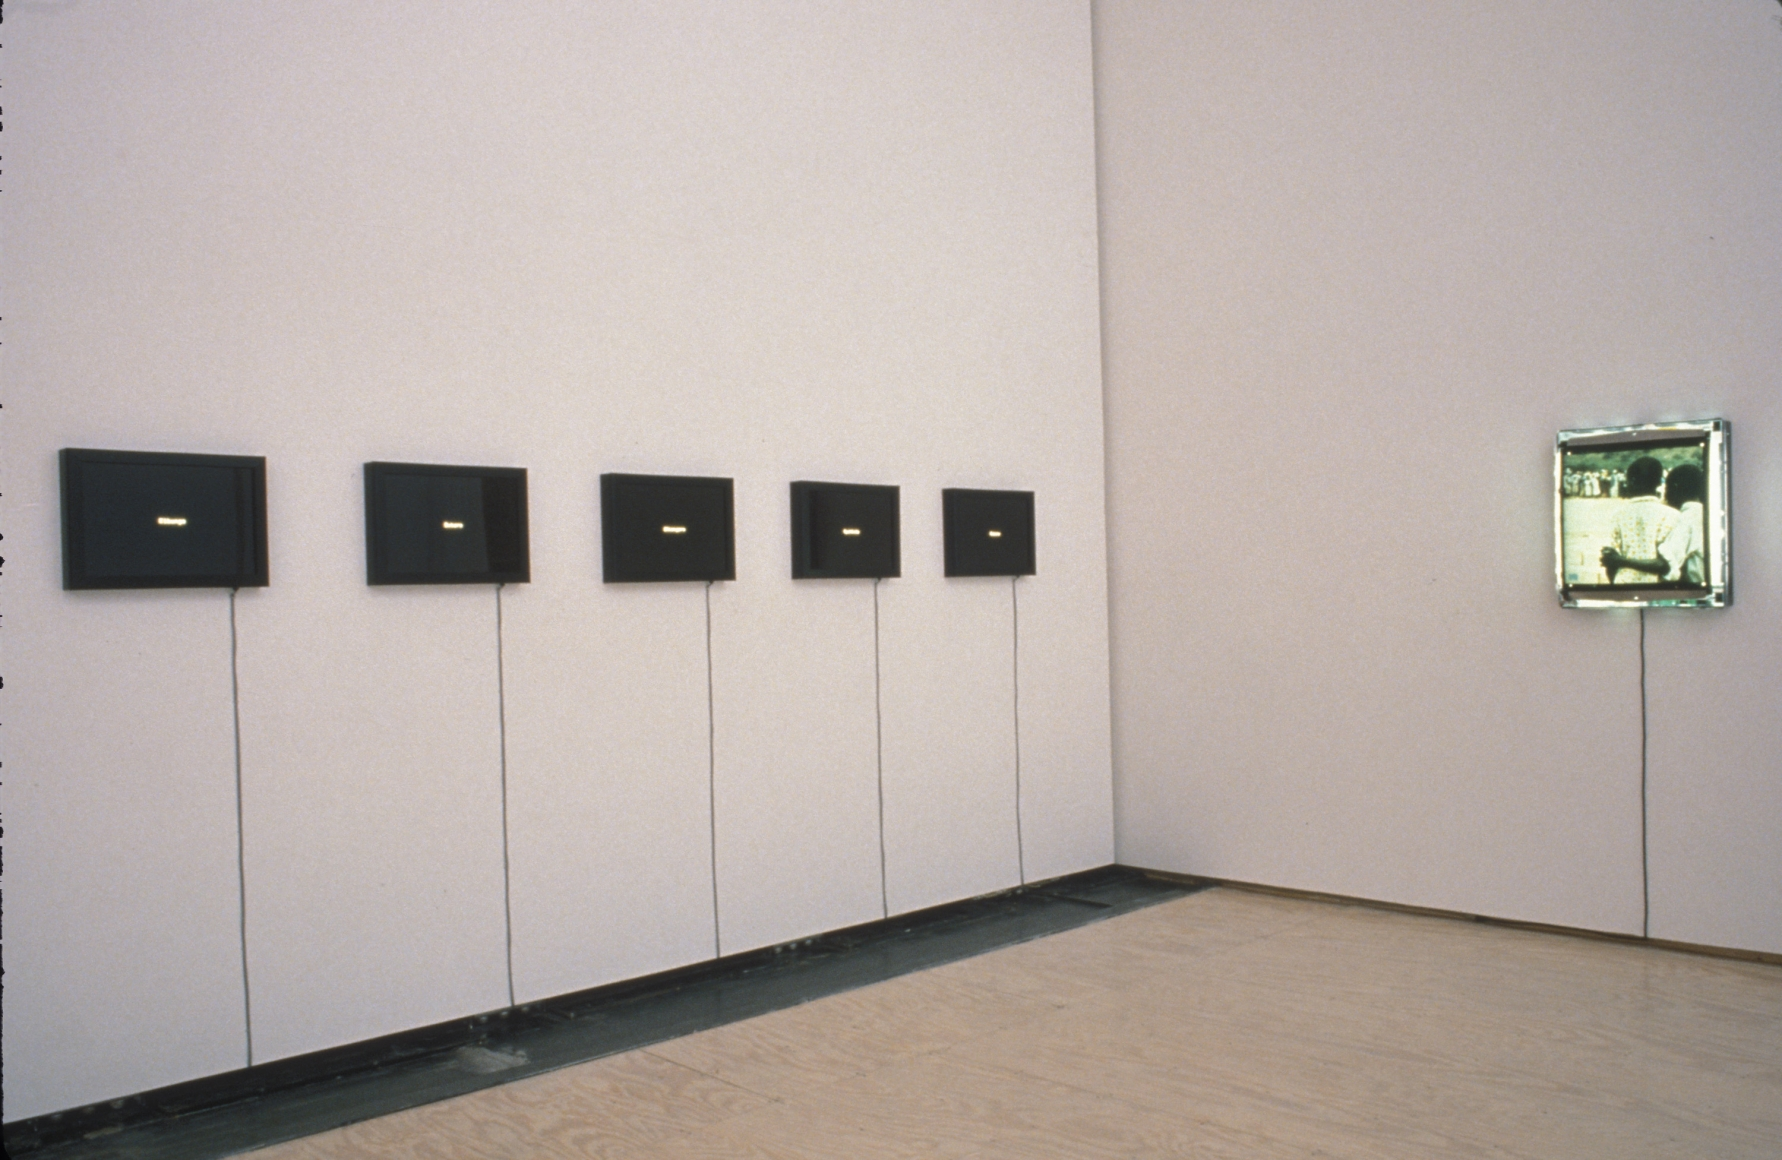 THE CRYSTAL STOPPER Curated by Carlos Basualdo installation view 2